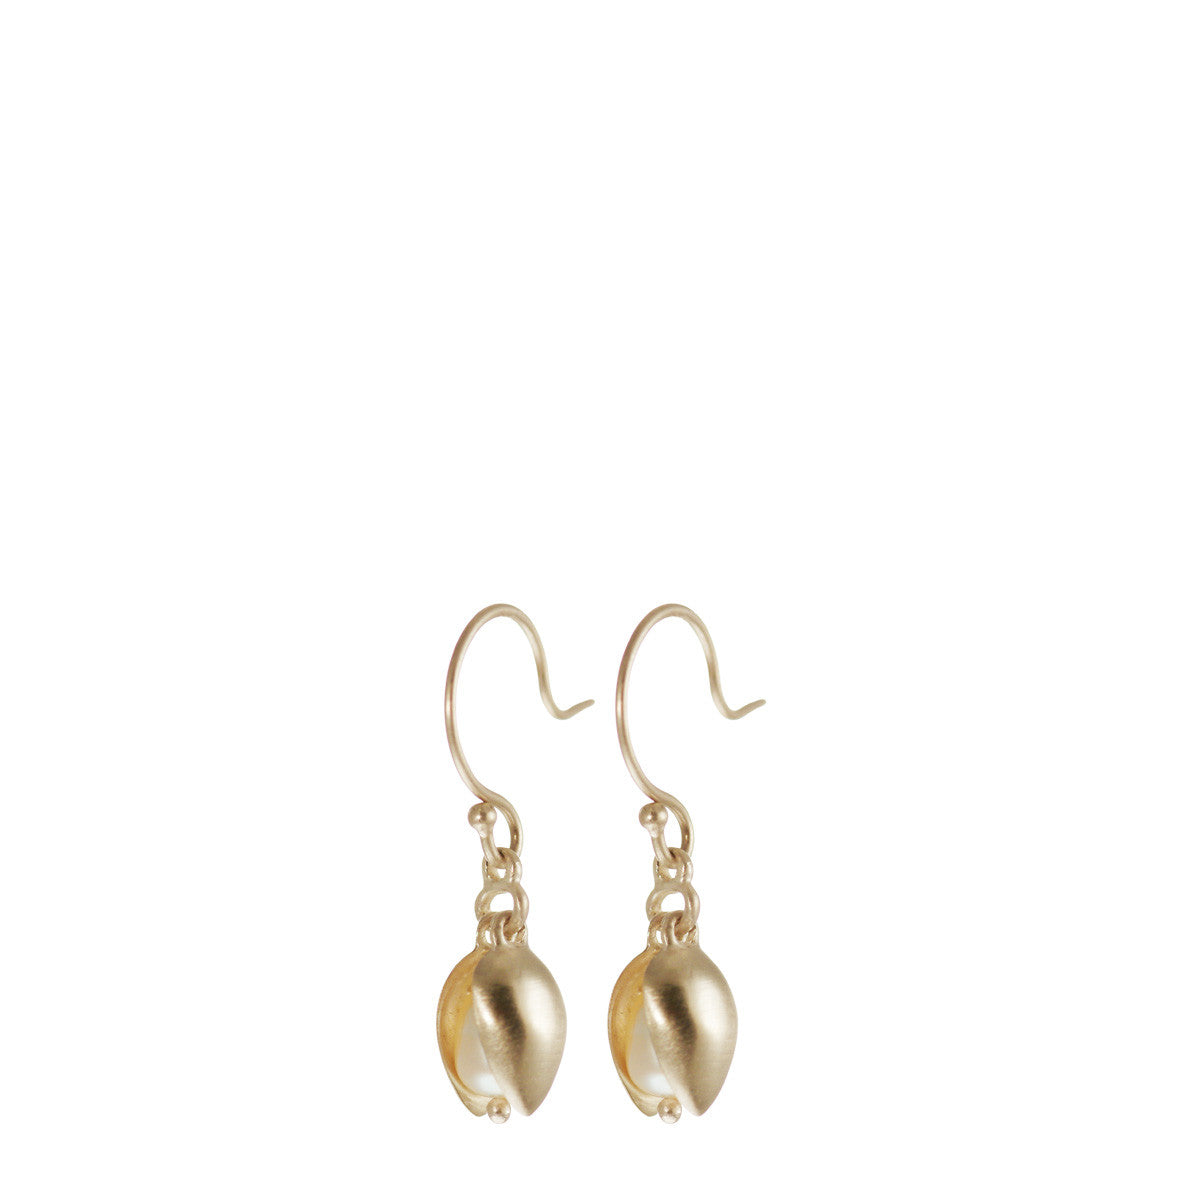 10K Gold Small Double Pod Earrings with Pearls